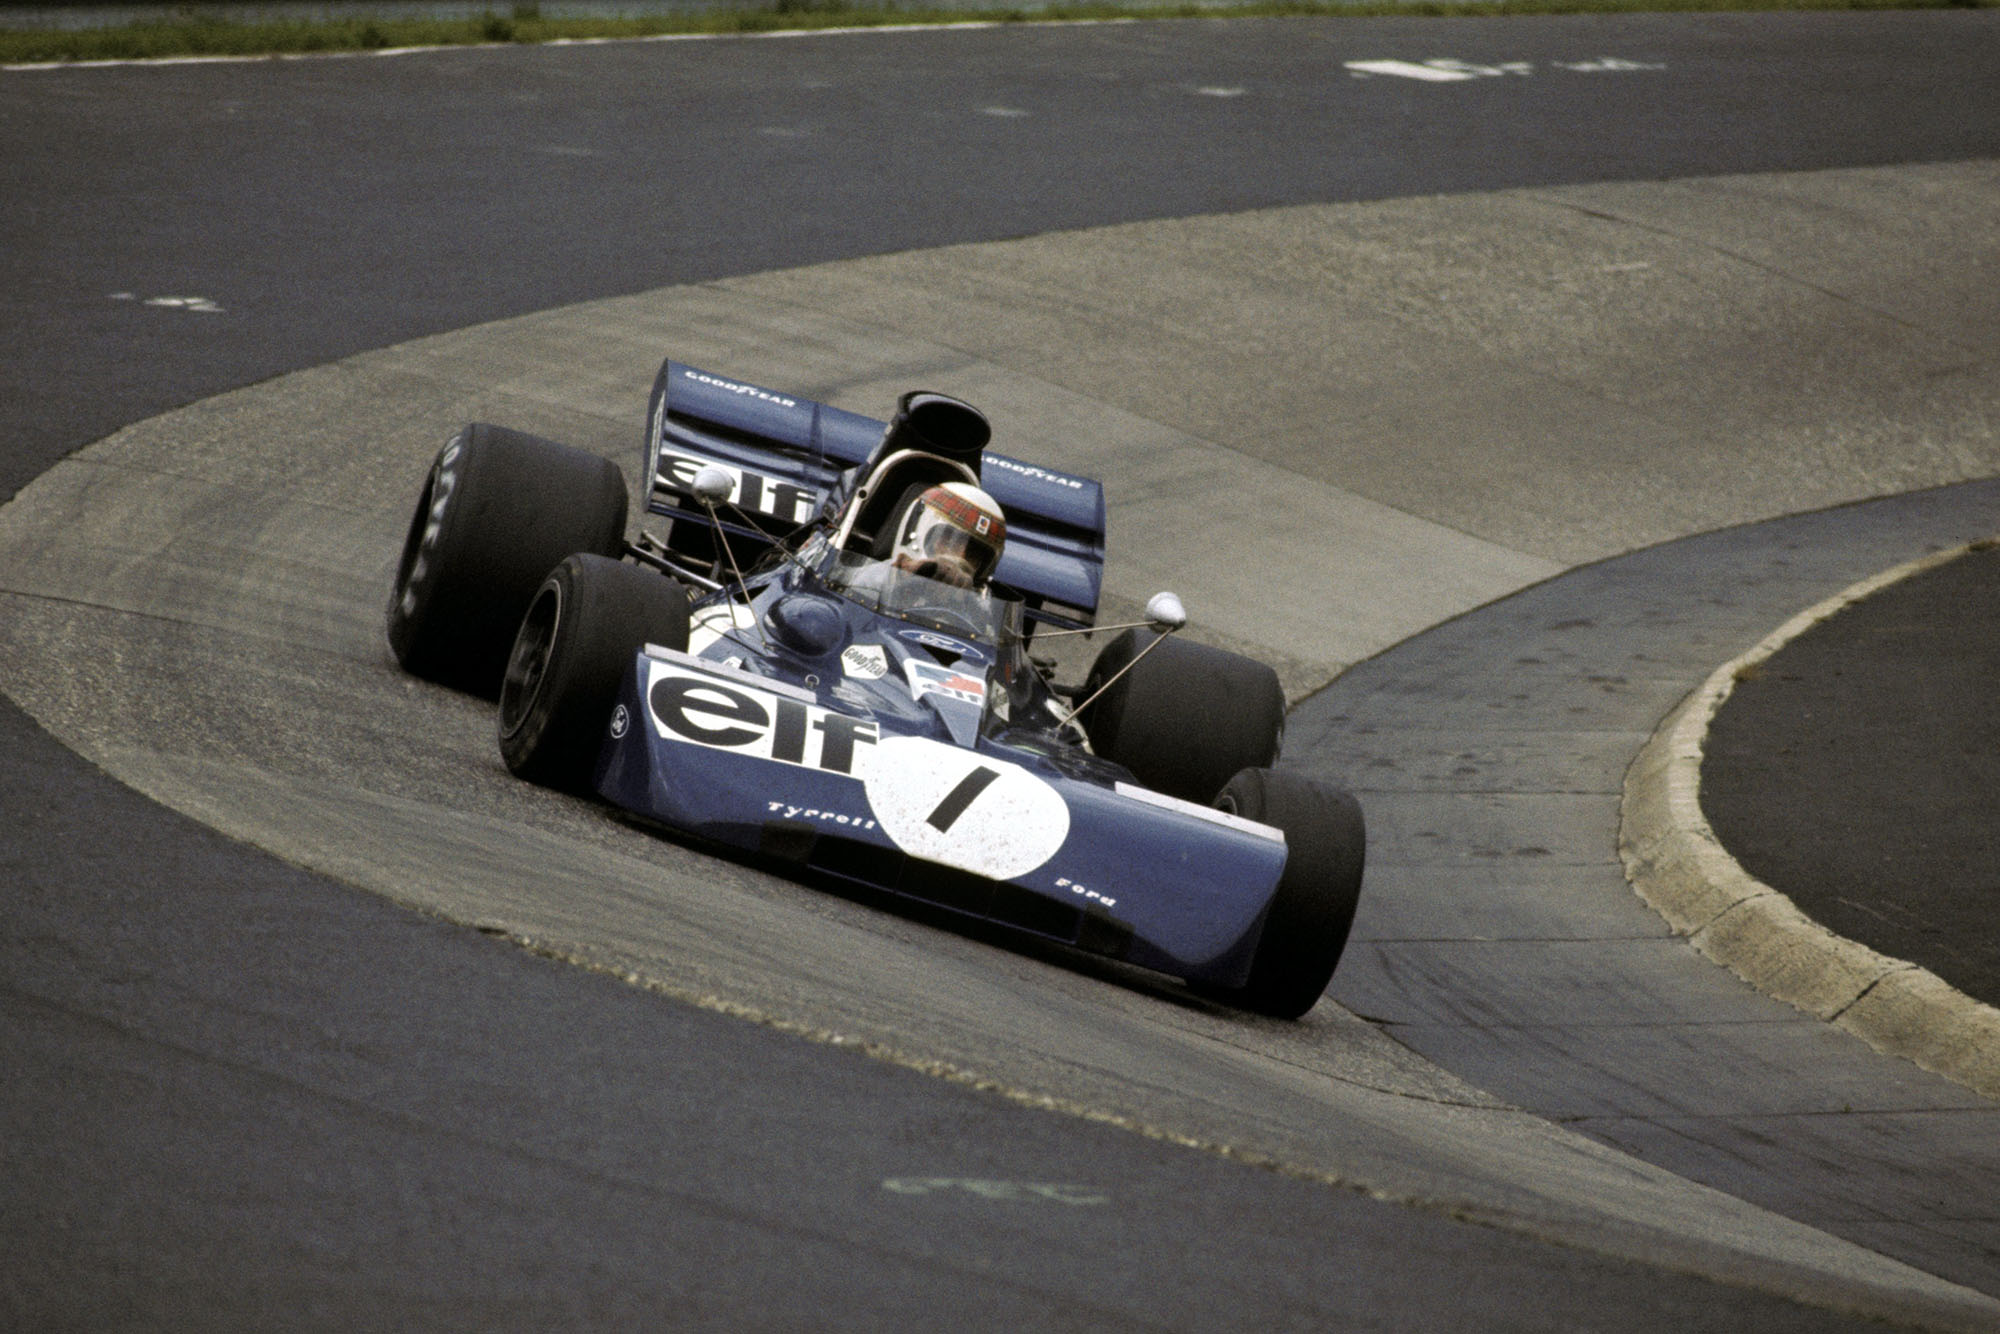 Jackie Stewart rounds the Karussell in his Tyrrell at the 1972 German Grand Prix, Nurburgring.